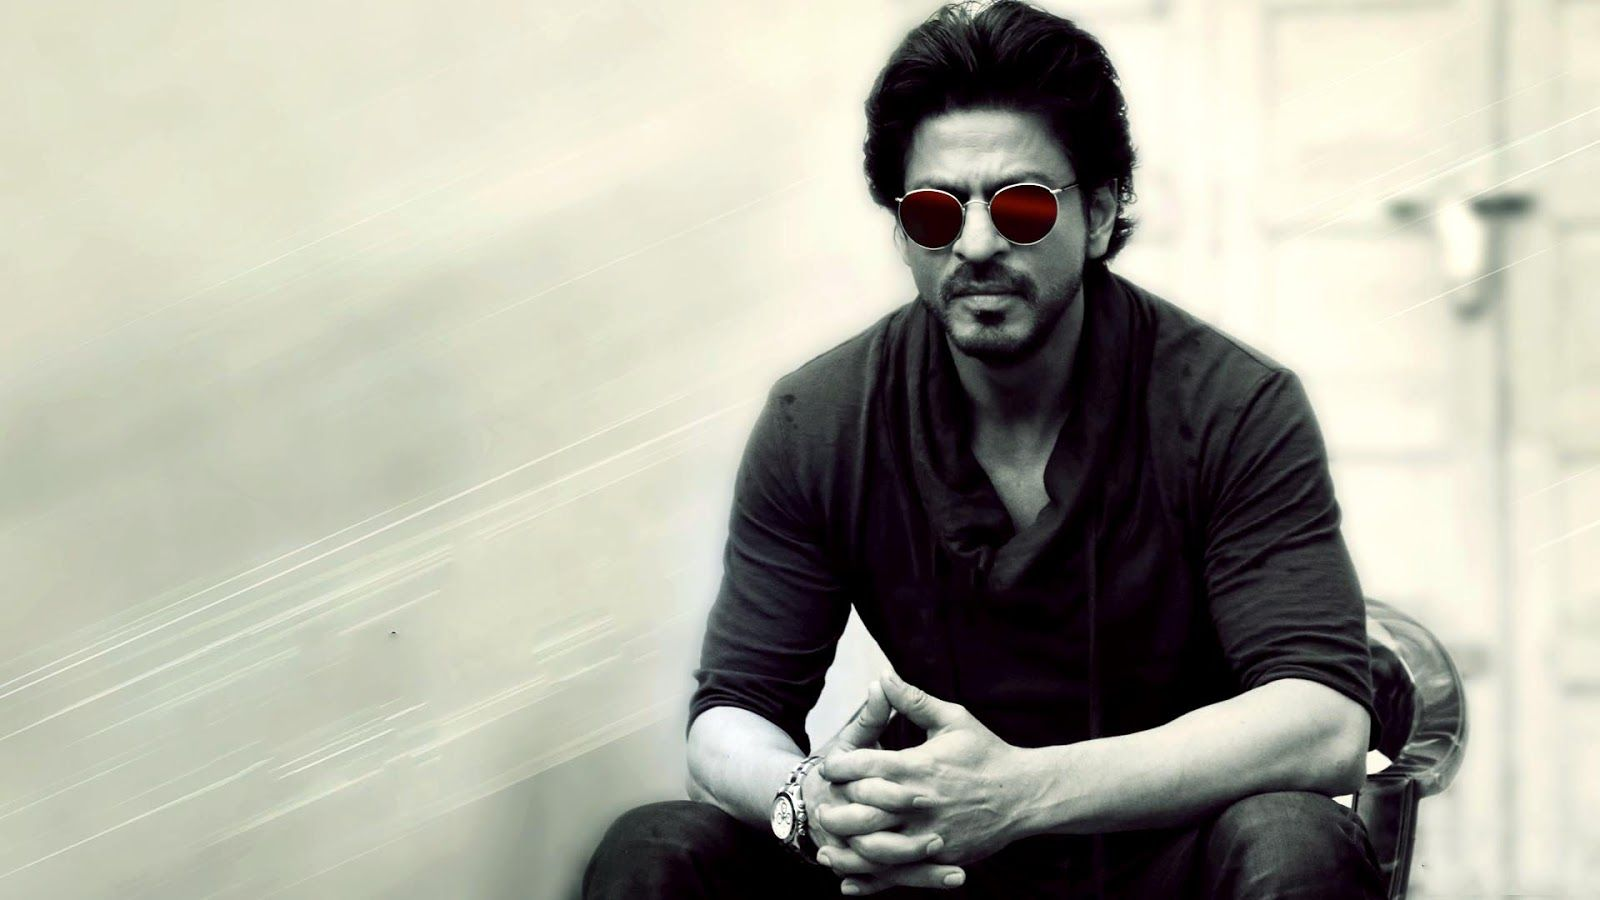 shahrukh khan wallpapers hd download free 1080p | shah rukh khan in